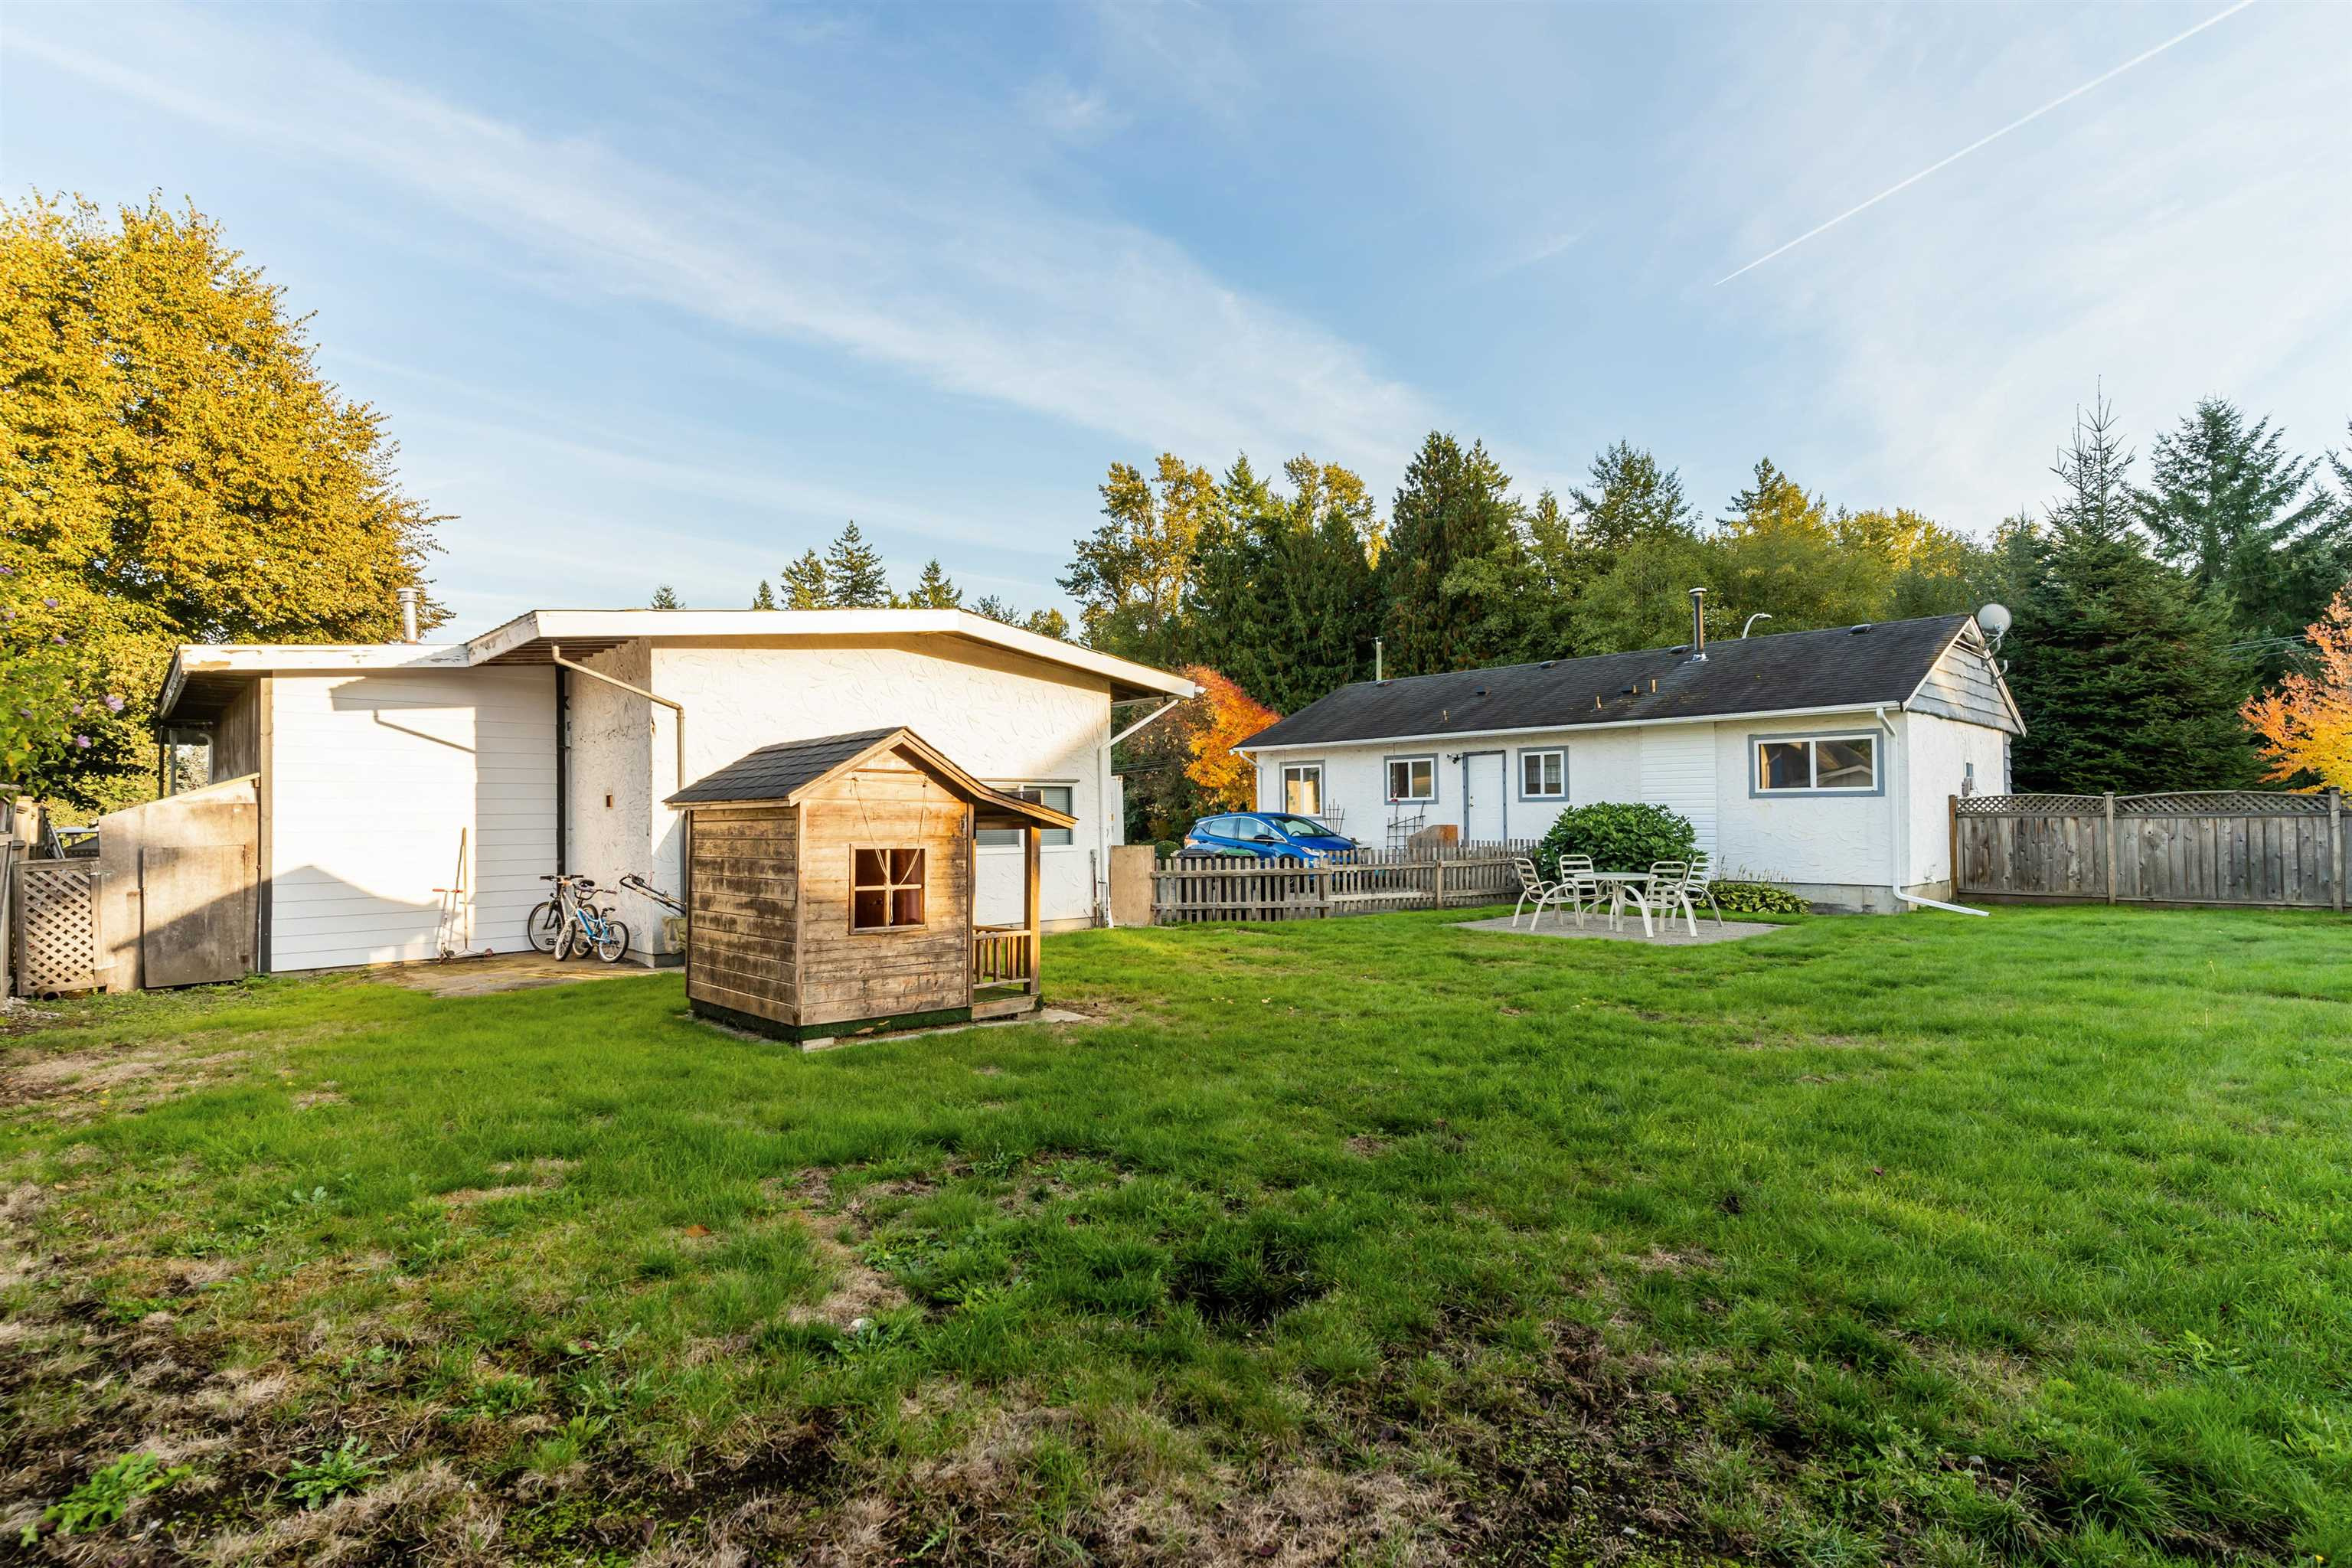 16527 84 AVENUE - Fleetwood Tynehead House/Single Family for sale, 2 Bedrooms (R2625496) - #27